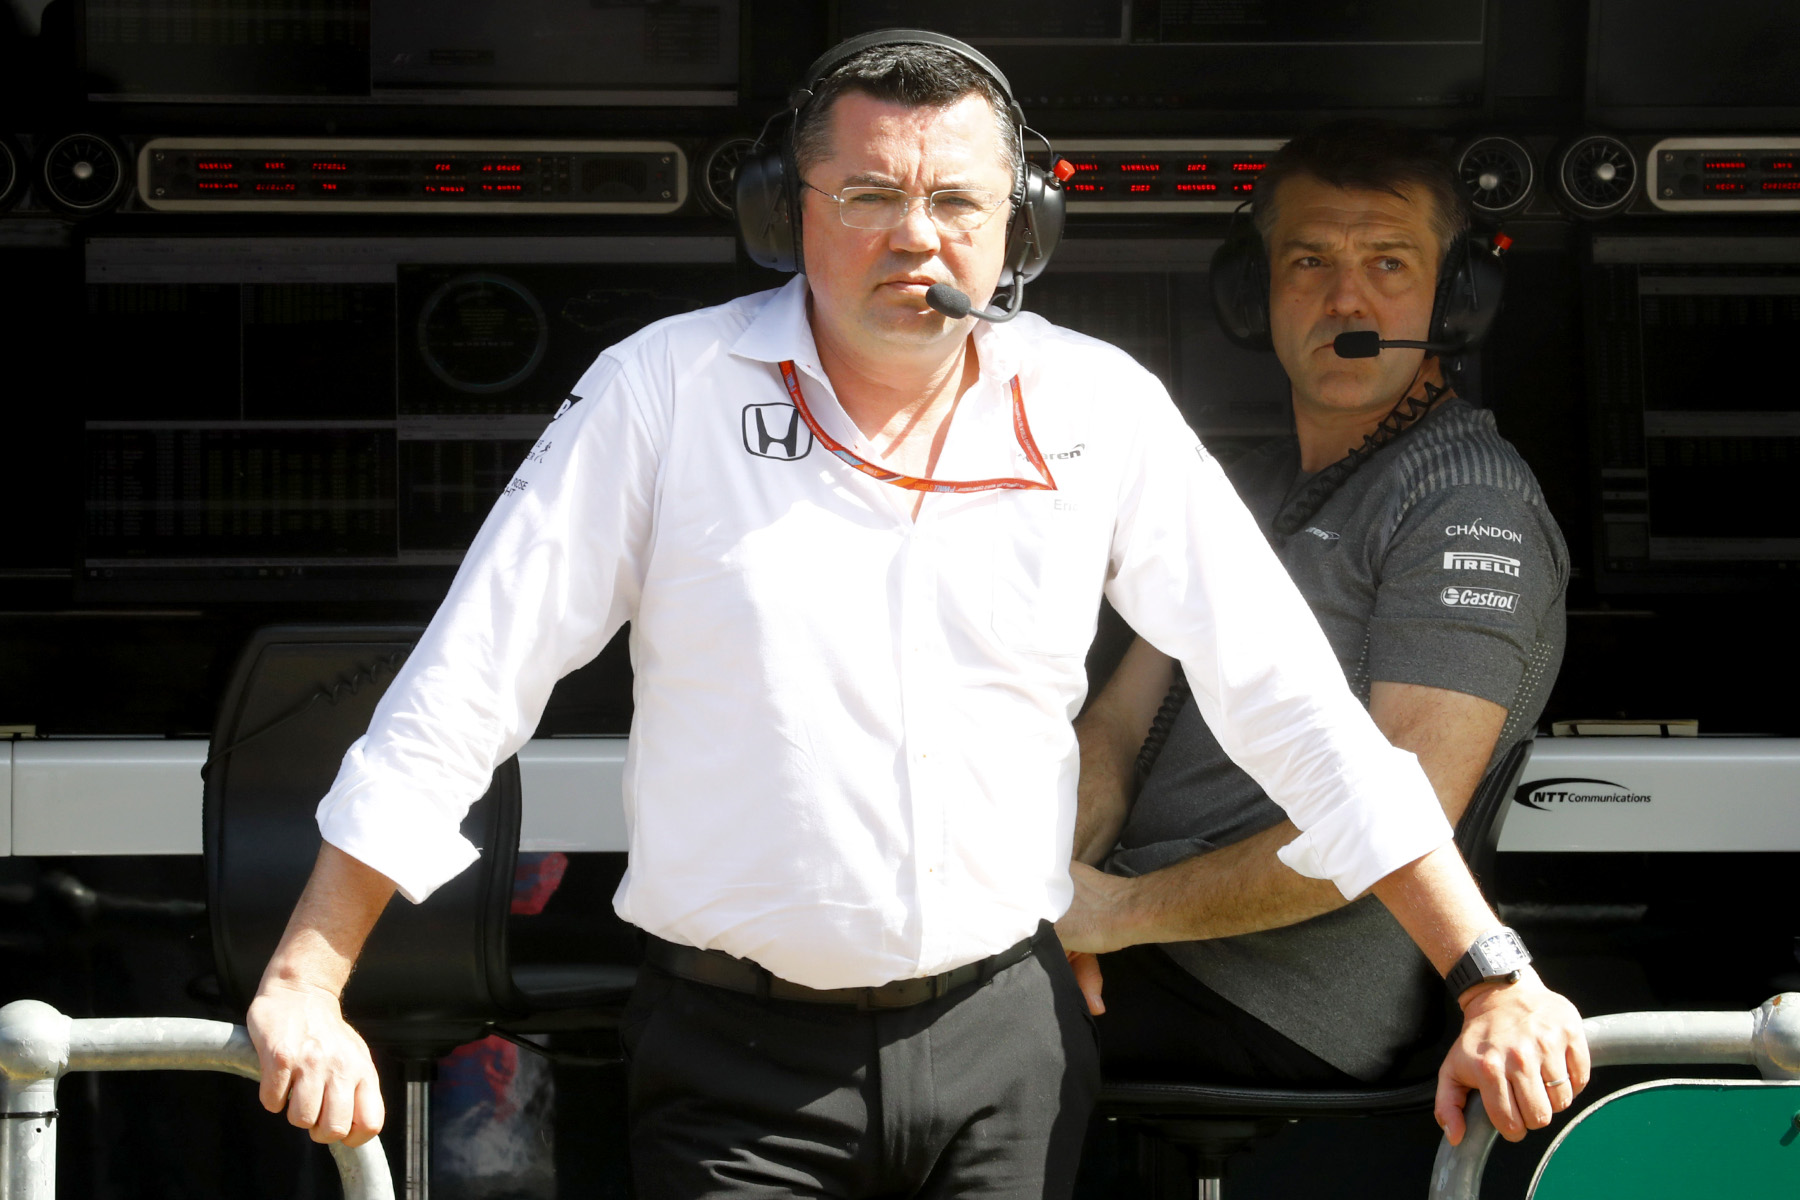 McLaren crisis deepens ahead of Chinese Grand Prix